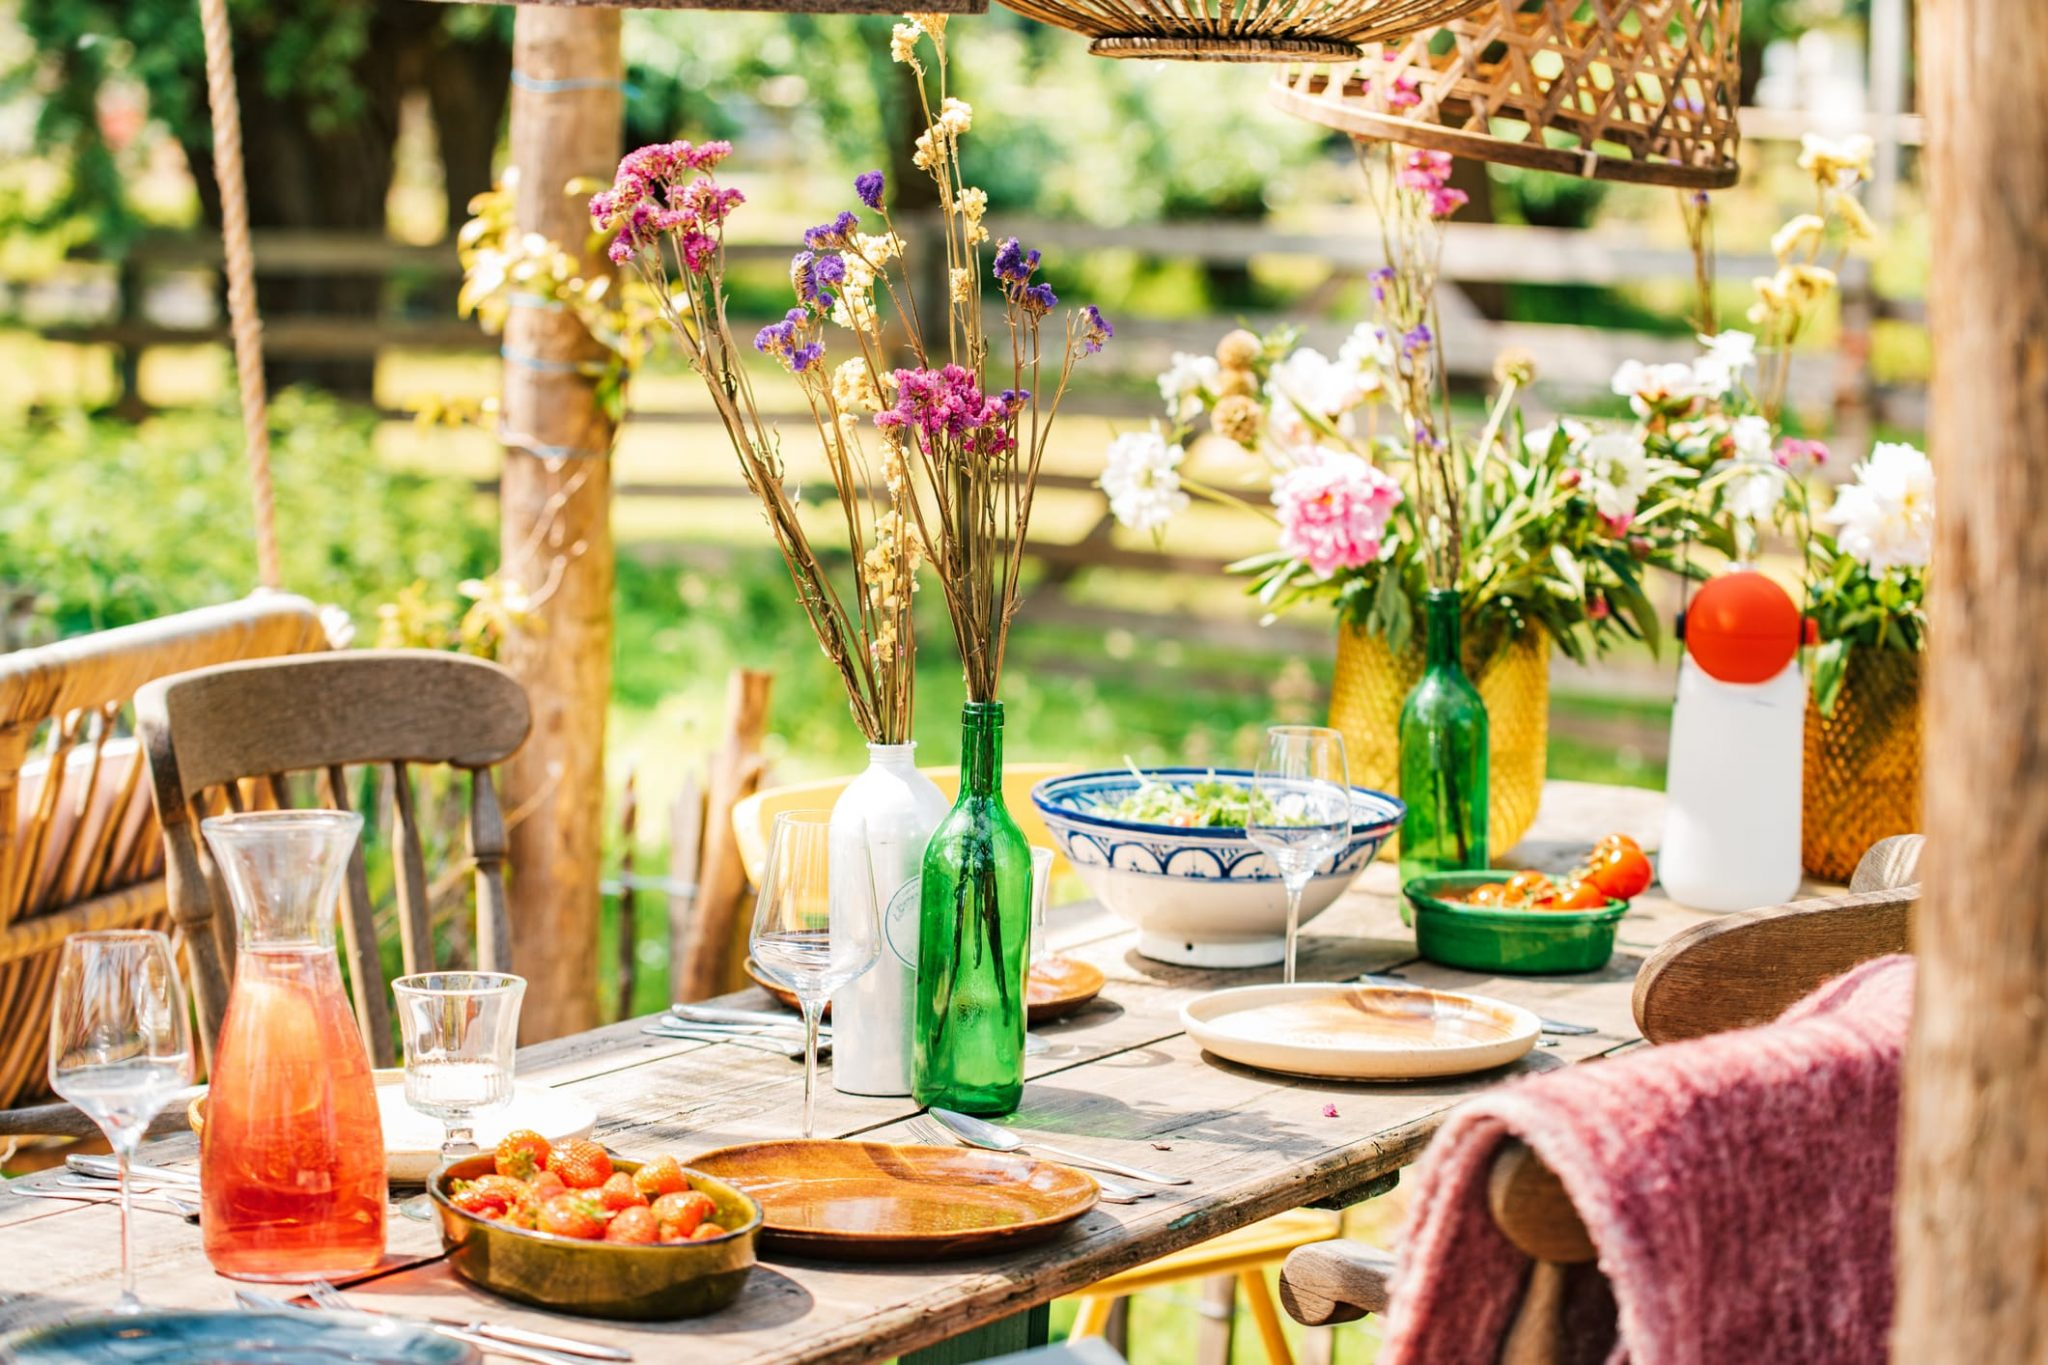 Summer dining table with flowers